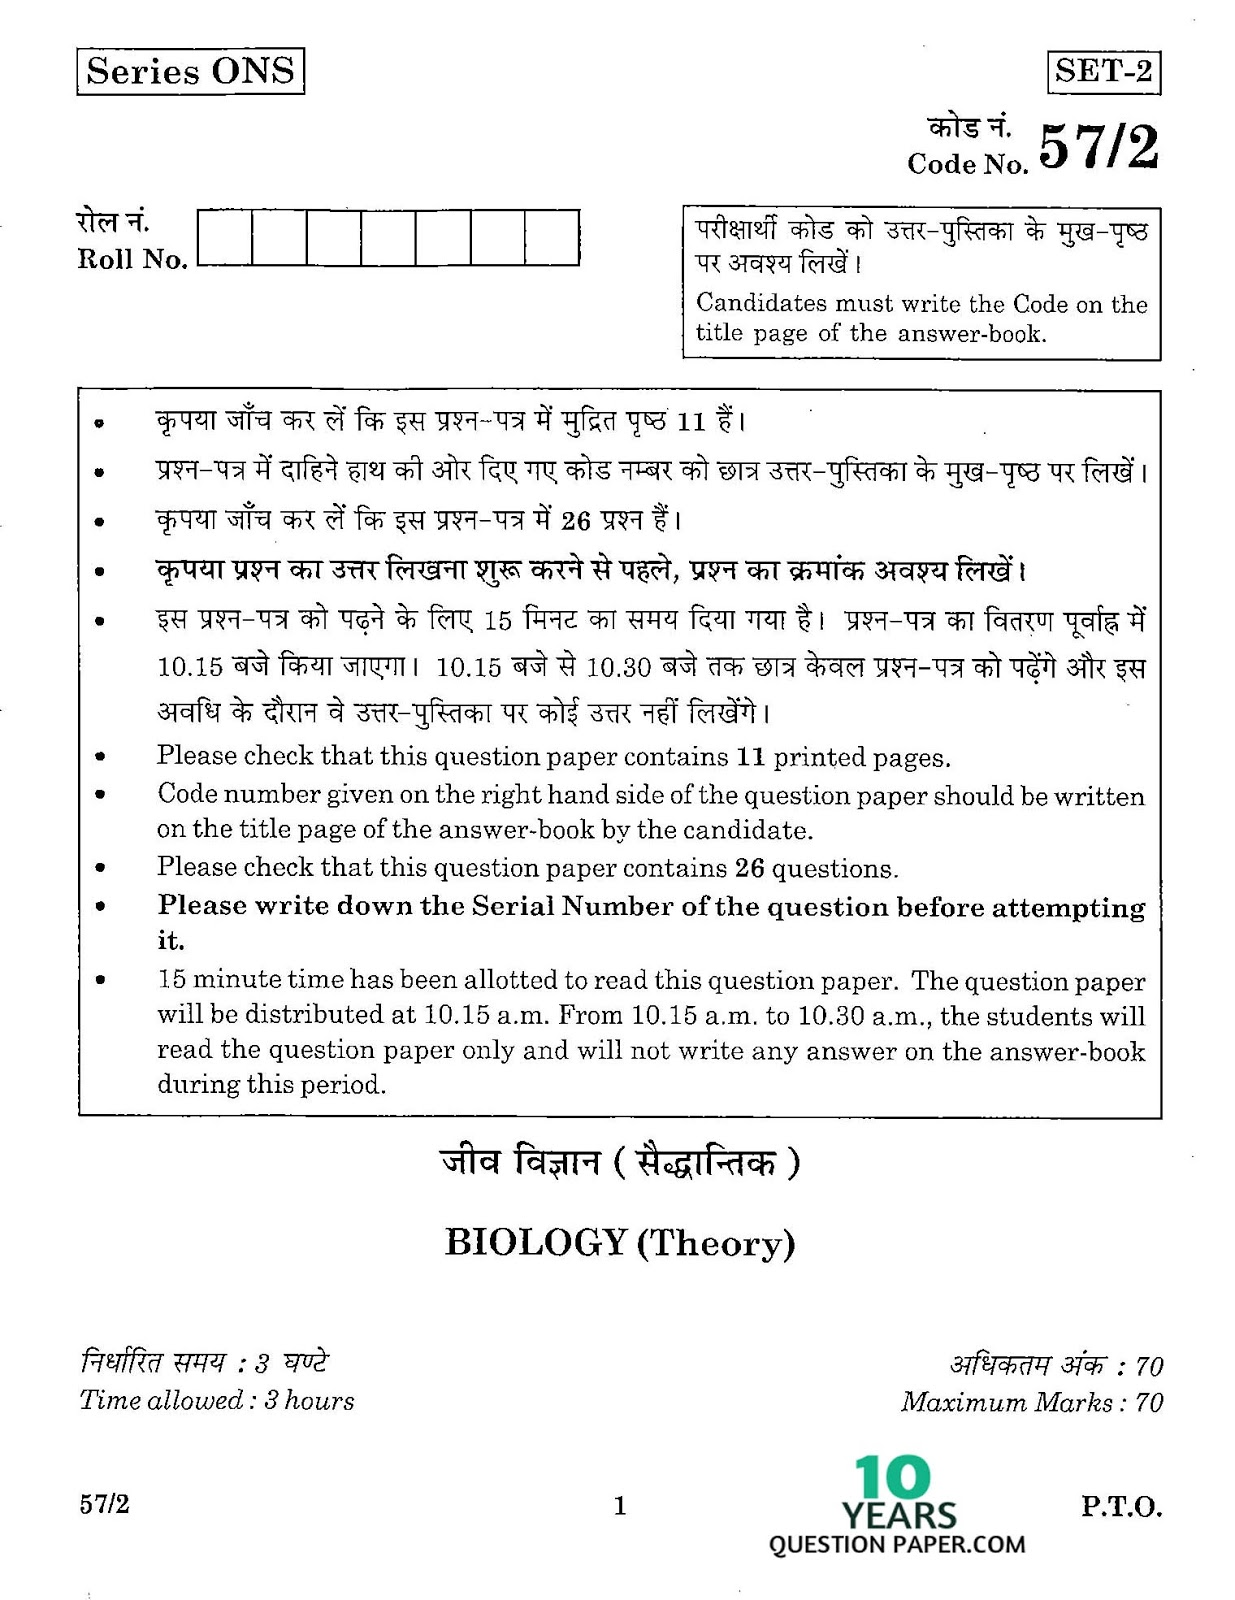 hr paper cbse biology class board question paper set years isc  cbse biology class board question paper set years cbse class 12th 2016 biology question paper